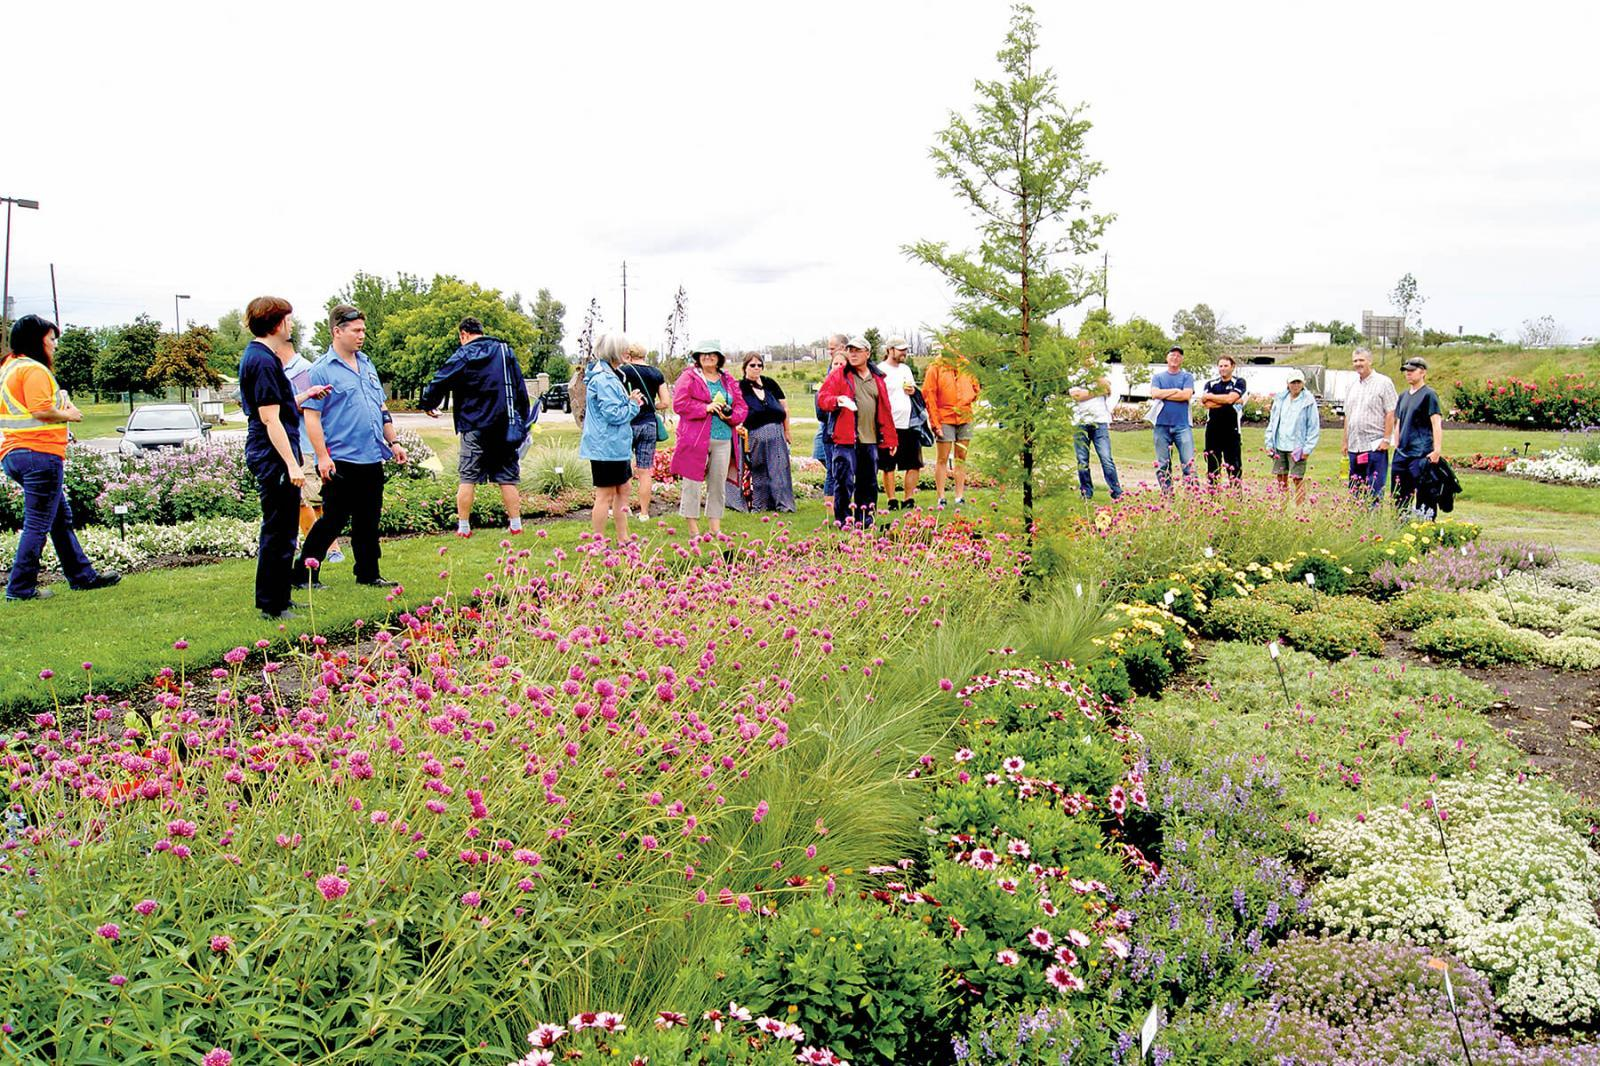 The highlight of this year's Trial Garden Open House was a tour of the beautiful setting led by garden manager Rodger Tschanz.